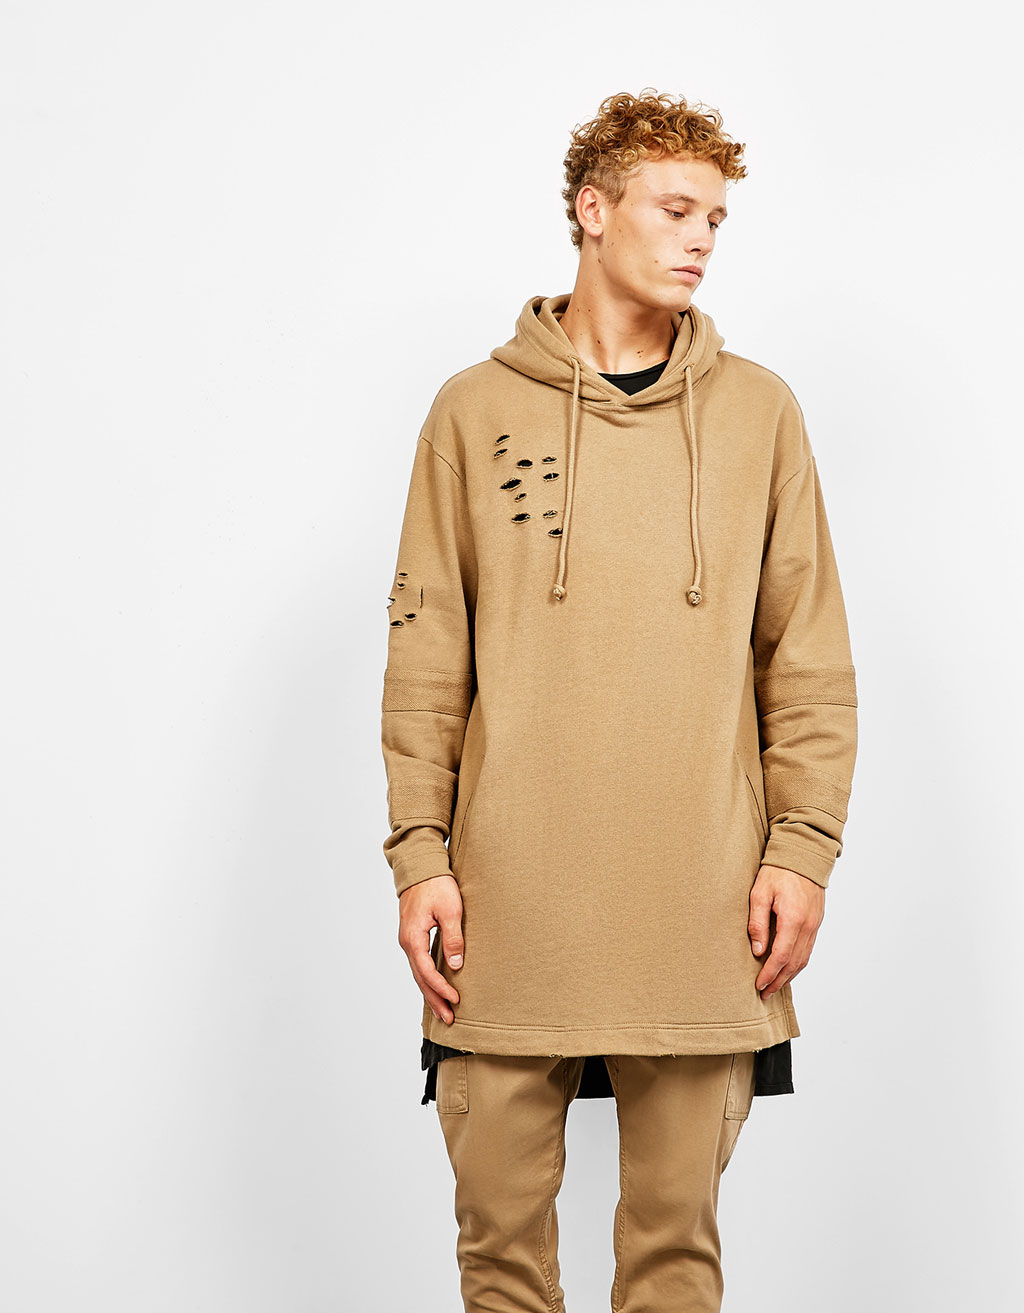 Long hooded sweatshirt